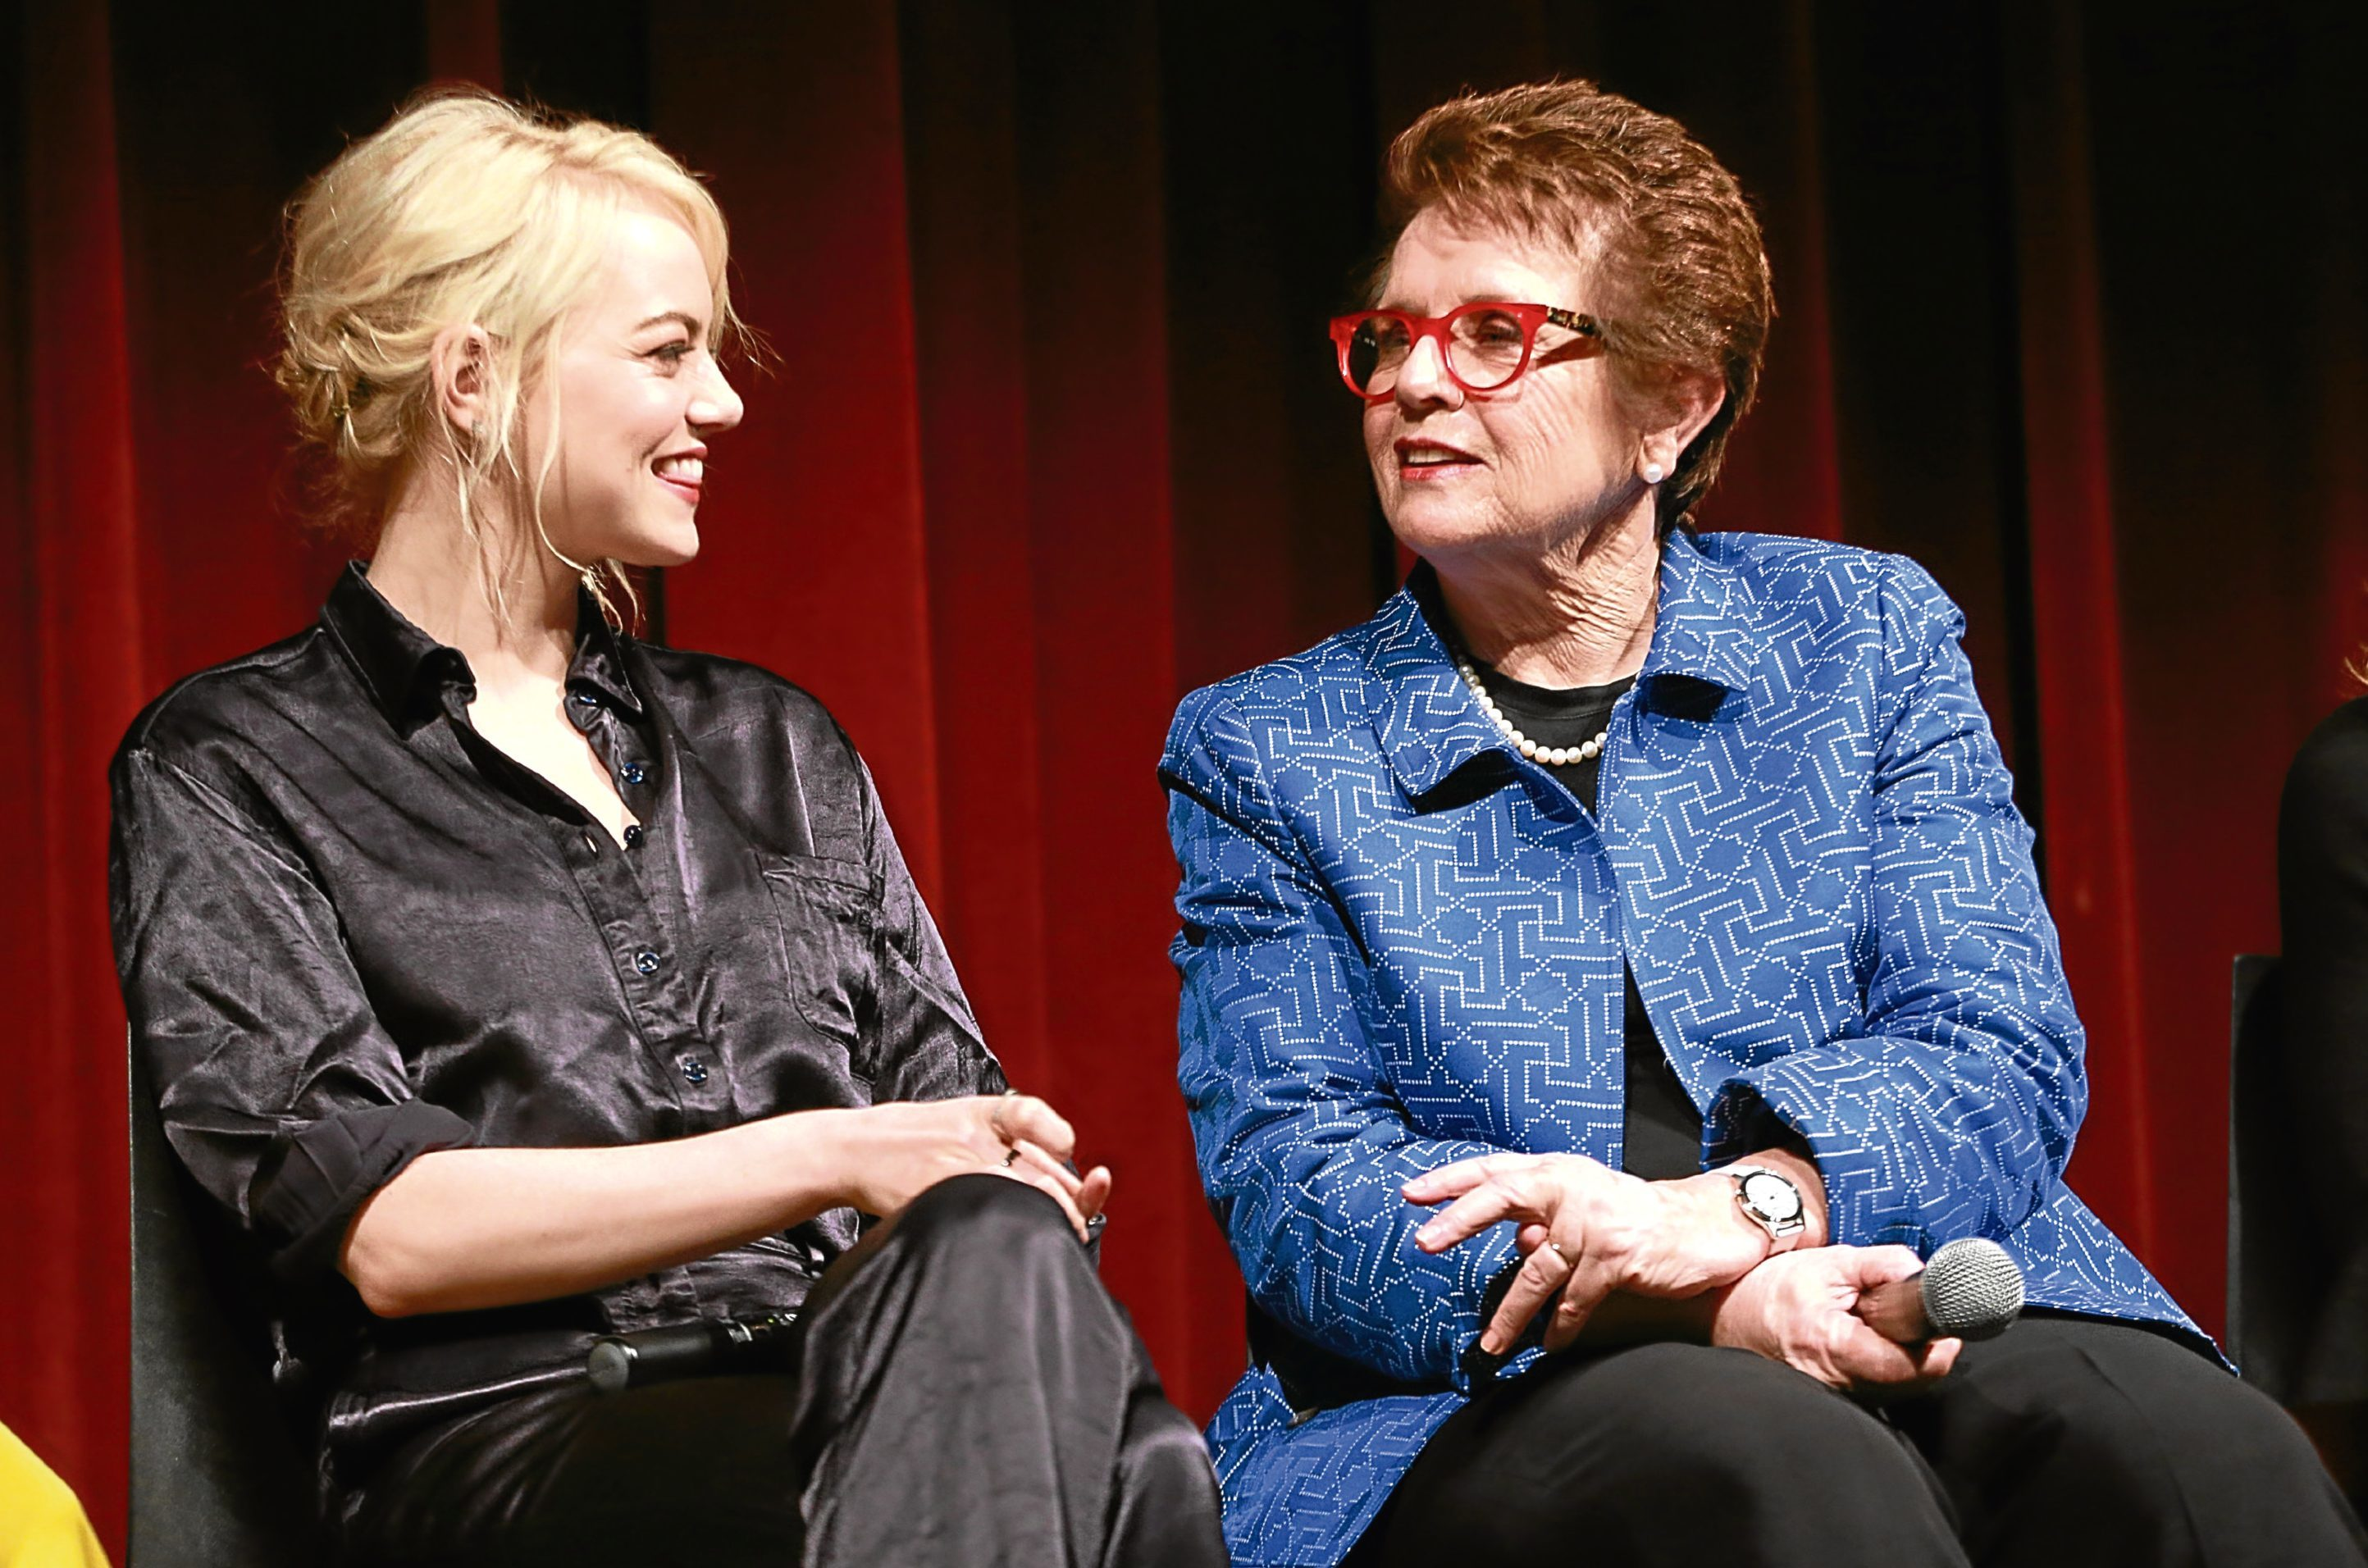 Emma Stone plays Billie Jean King in the Battle Of The Sexes film (Robin Marchant / Getty Images)